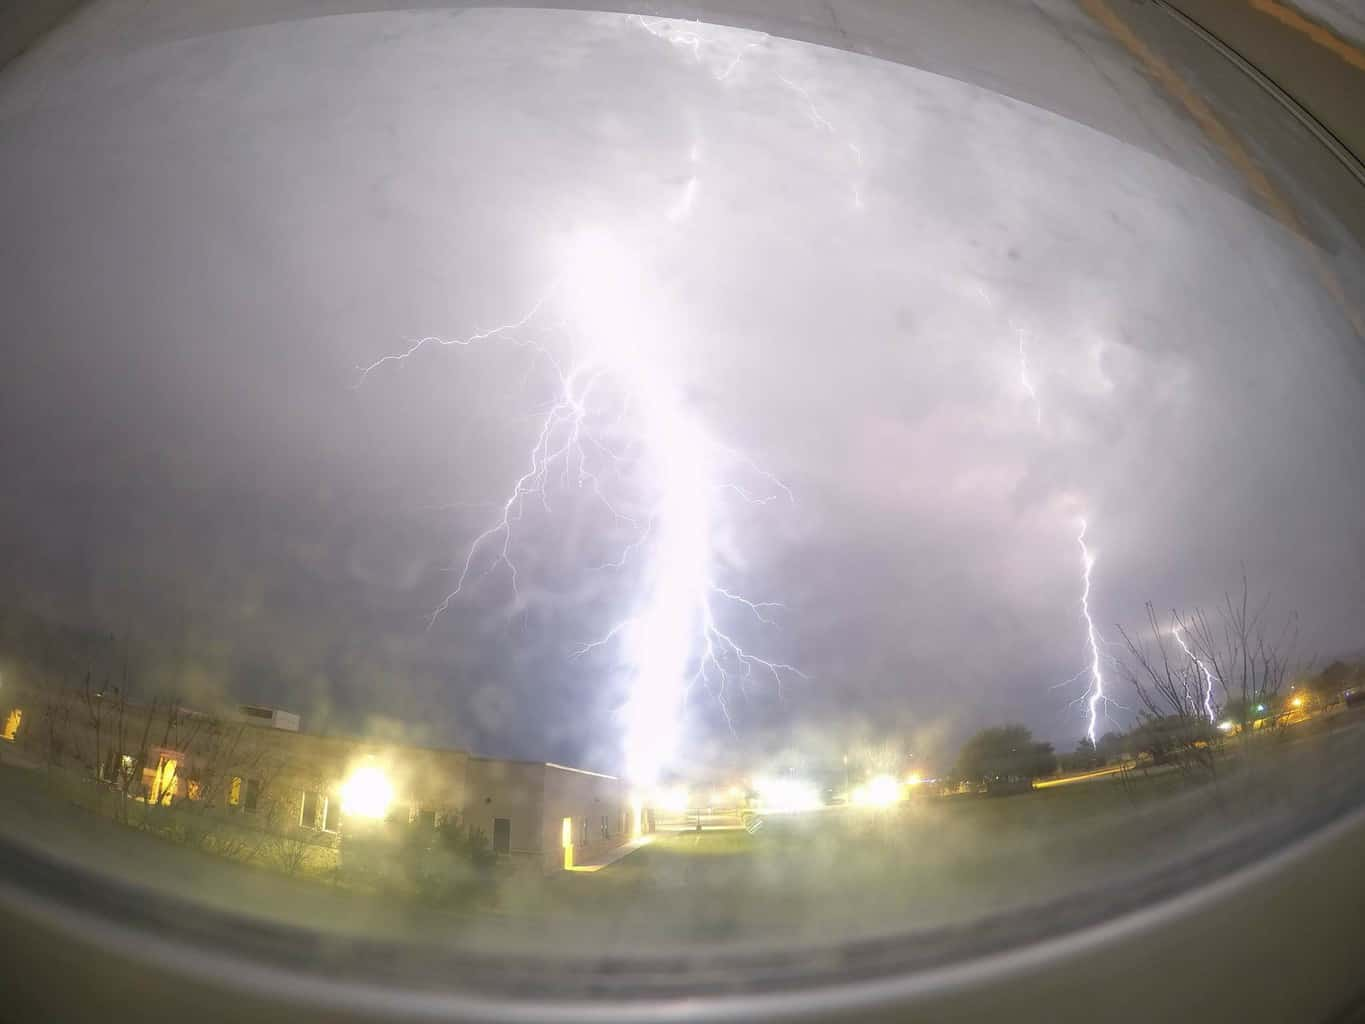 Wednesday, March 28, 2018, some severe thunderstorms moved into Bastrop County, Texas. And threw out a lot of powerful lightning bolts. As seen from my bedroom window, taken by my GoPro Hero 4.